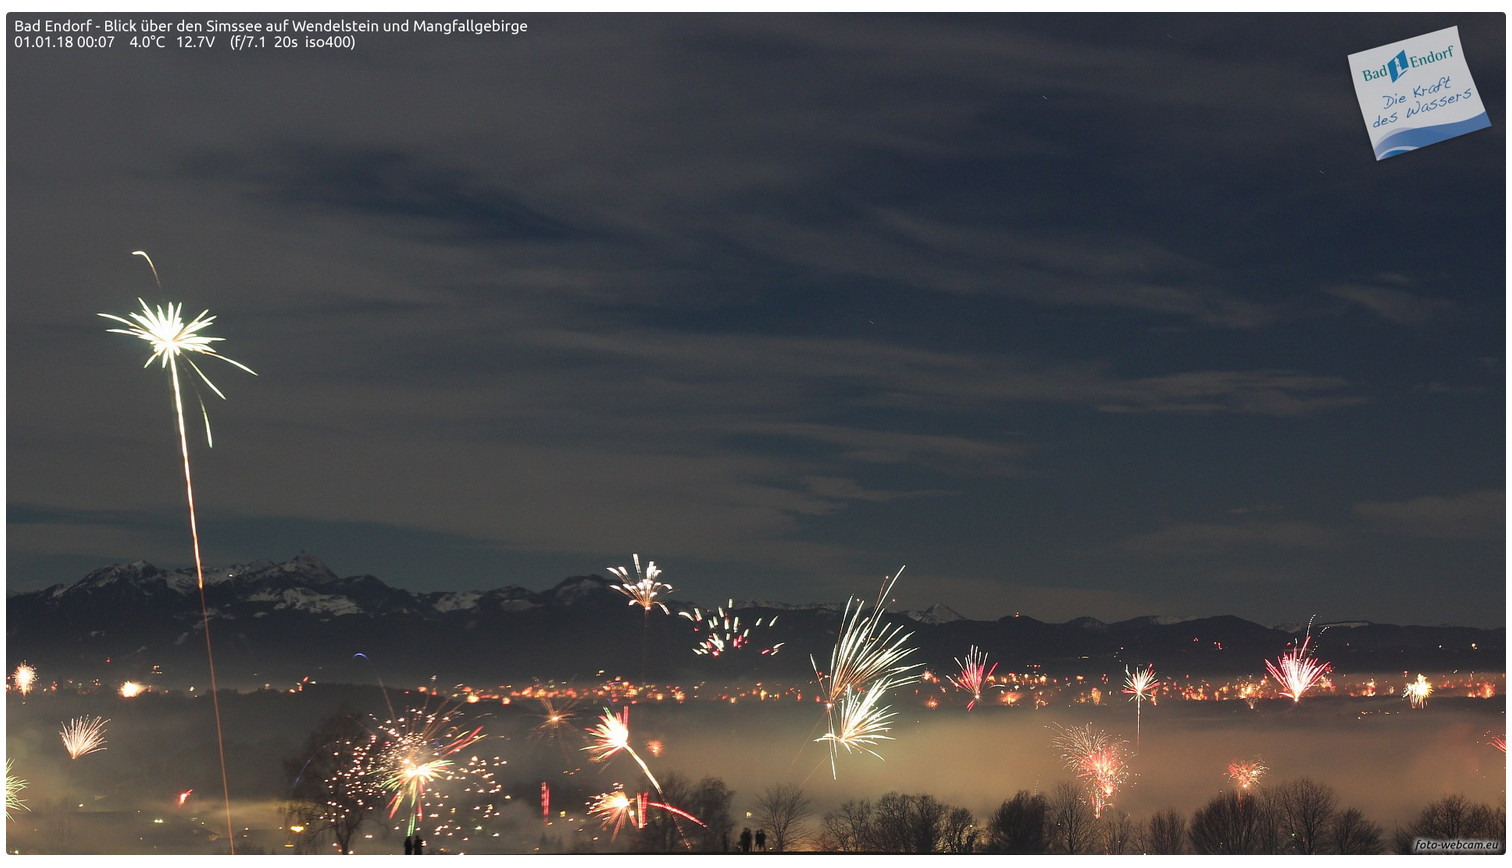 2017 Silvester am Simssee